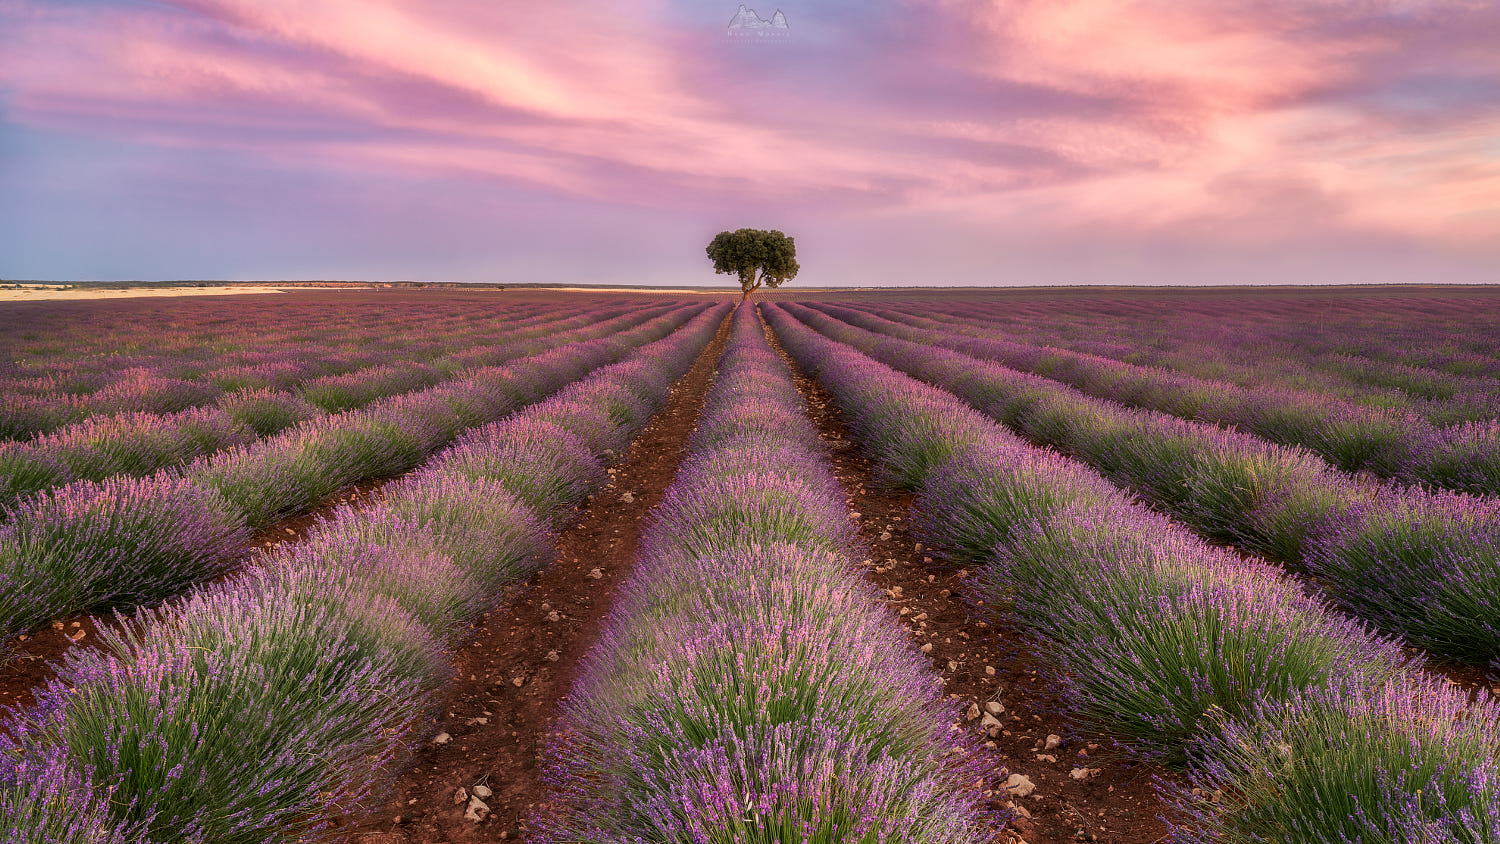 Lavender has a nice smell just by looking at it.